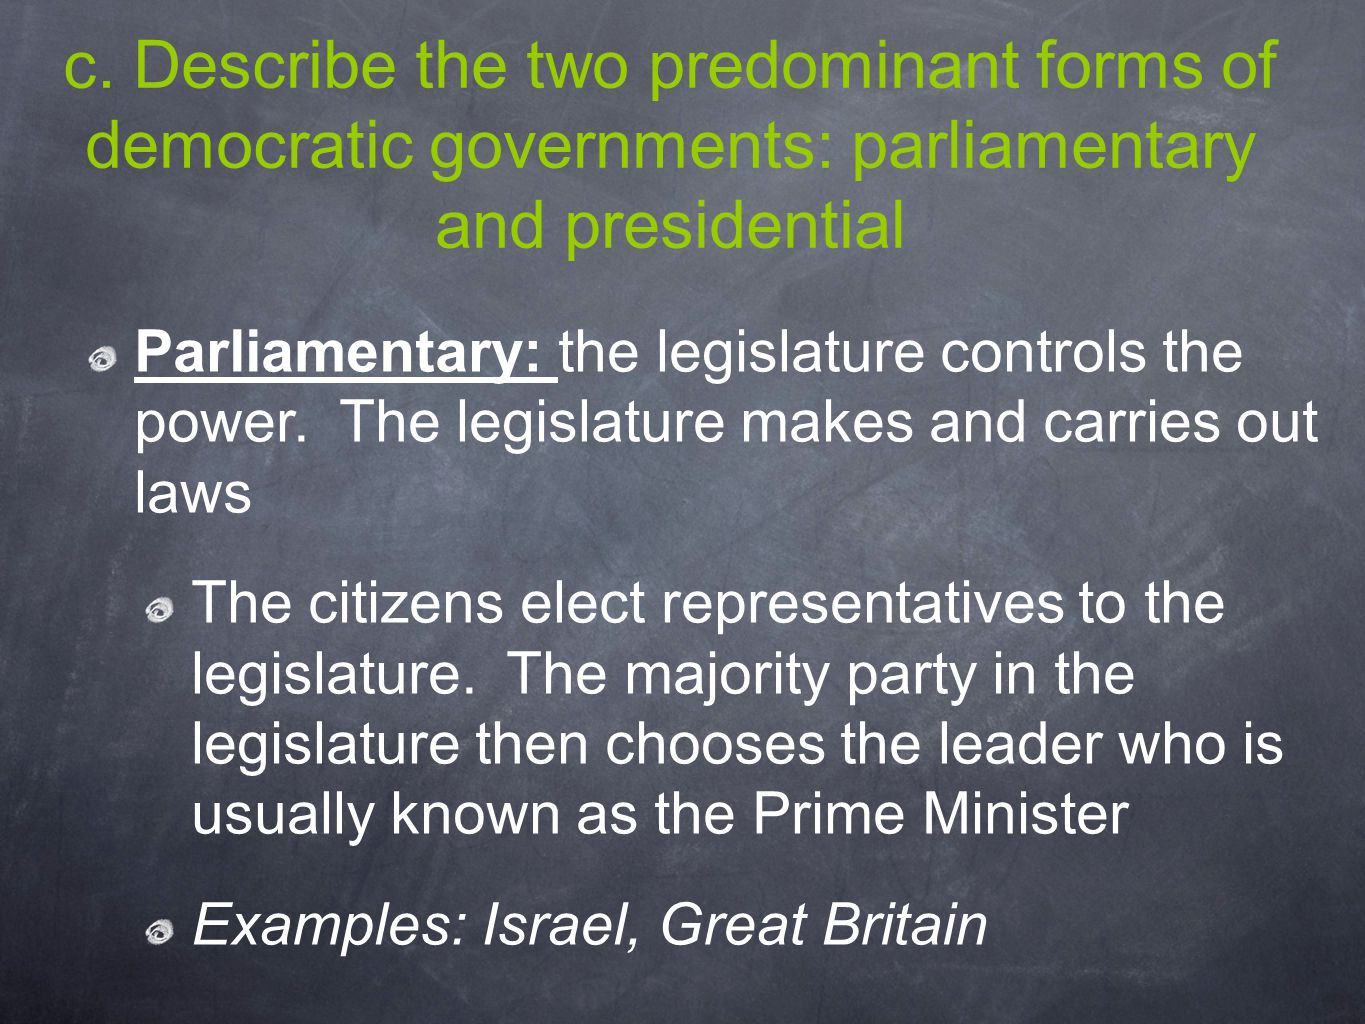 c. Describe the two predominant forms of democratic governments: parliamentary and presidential